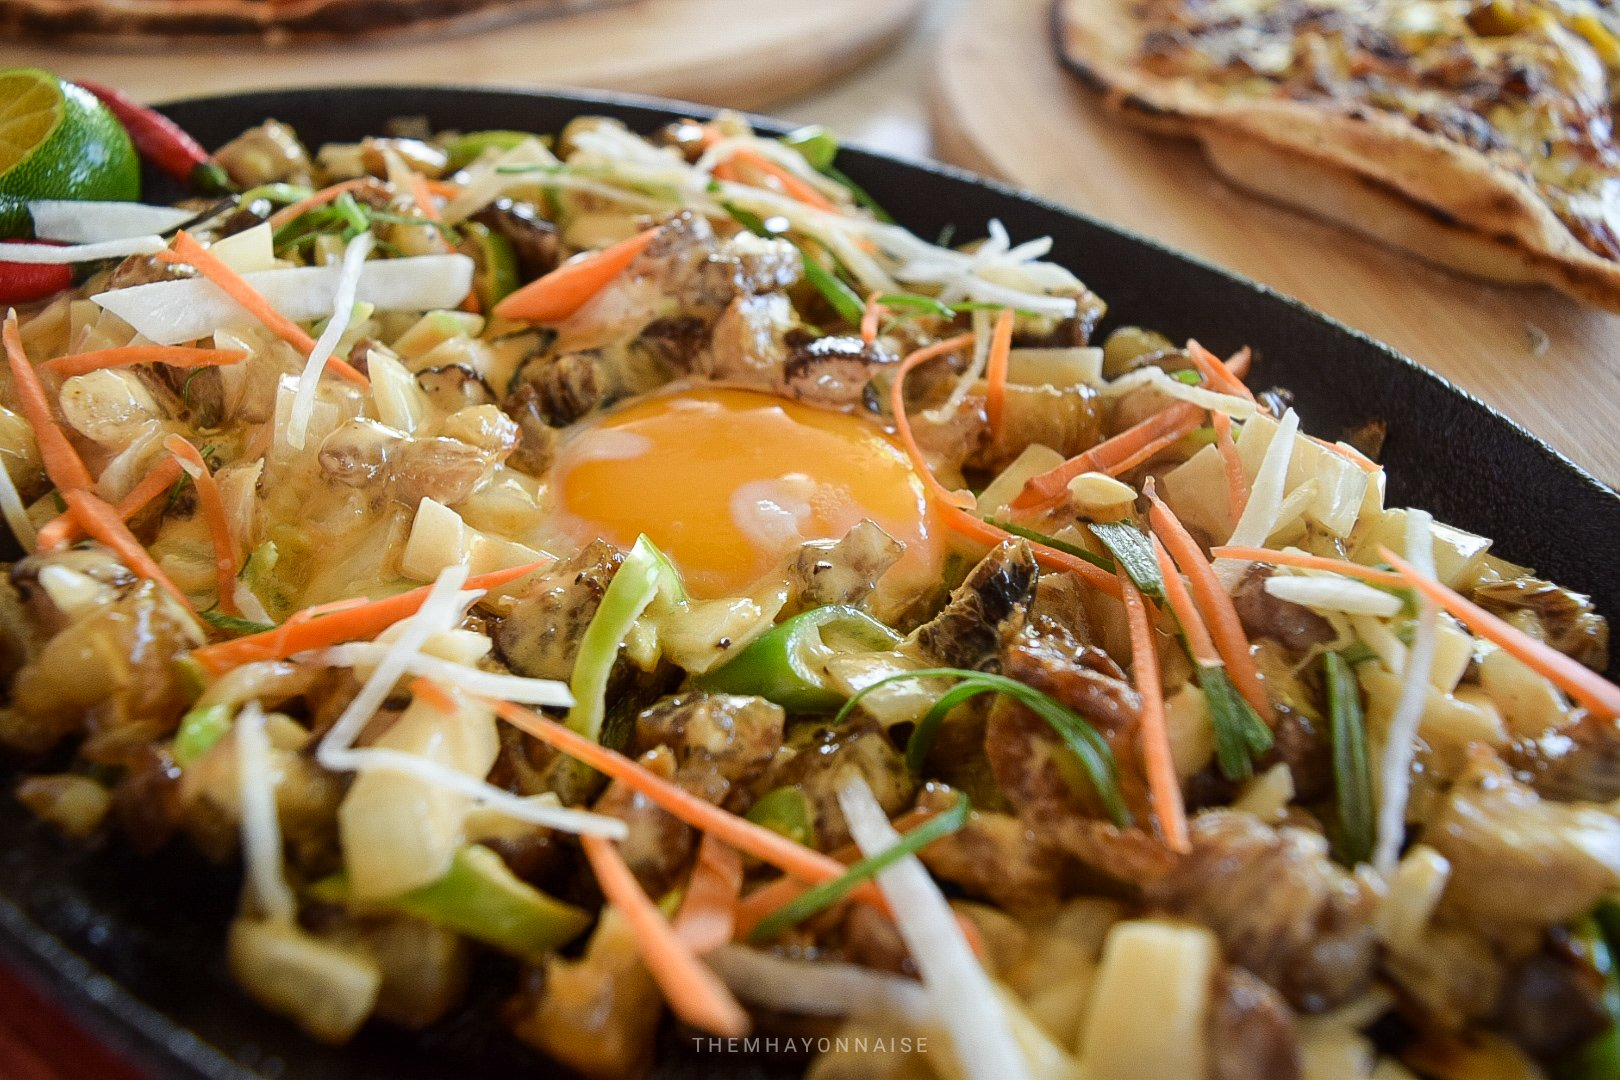 pork sisig | ciao pizzeria by the sea | sundowners bolinao | themhayonnaise